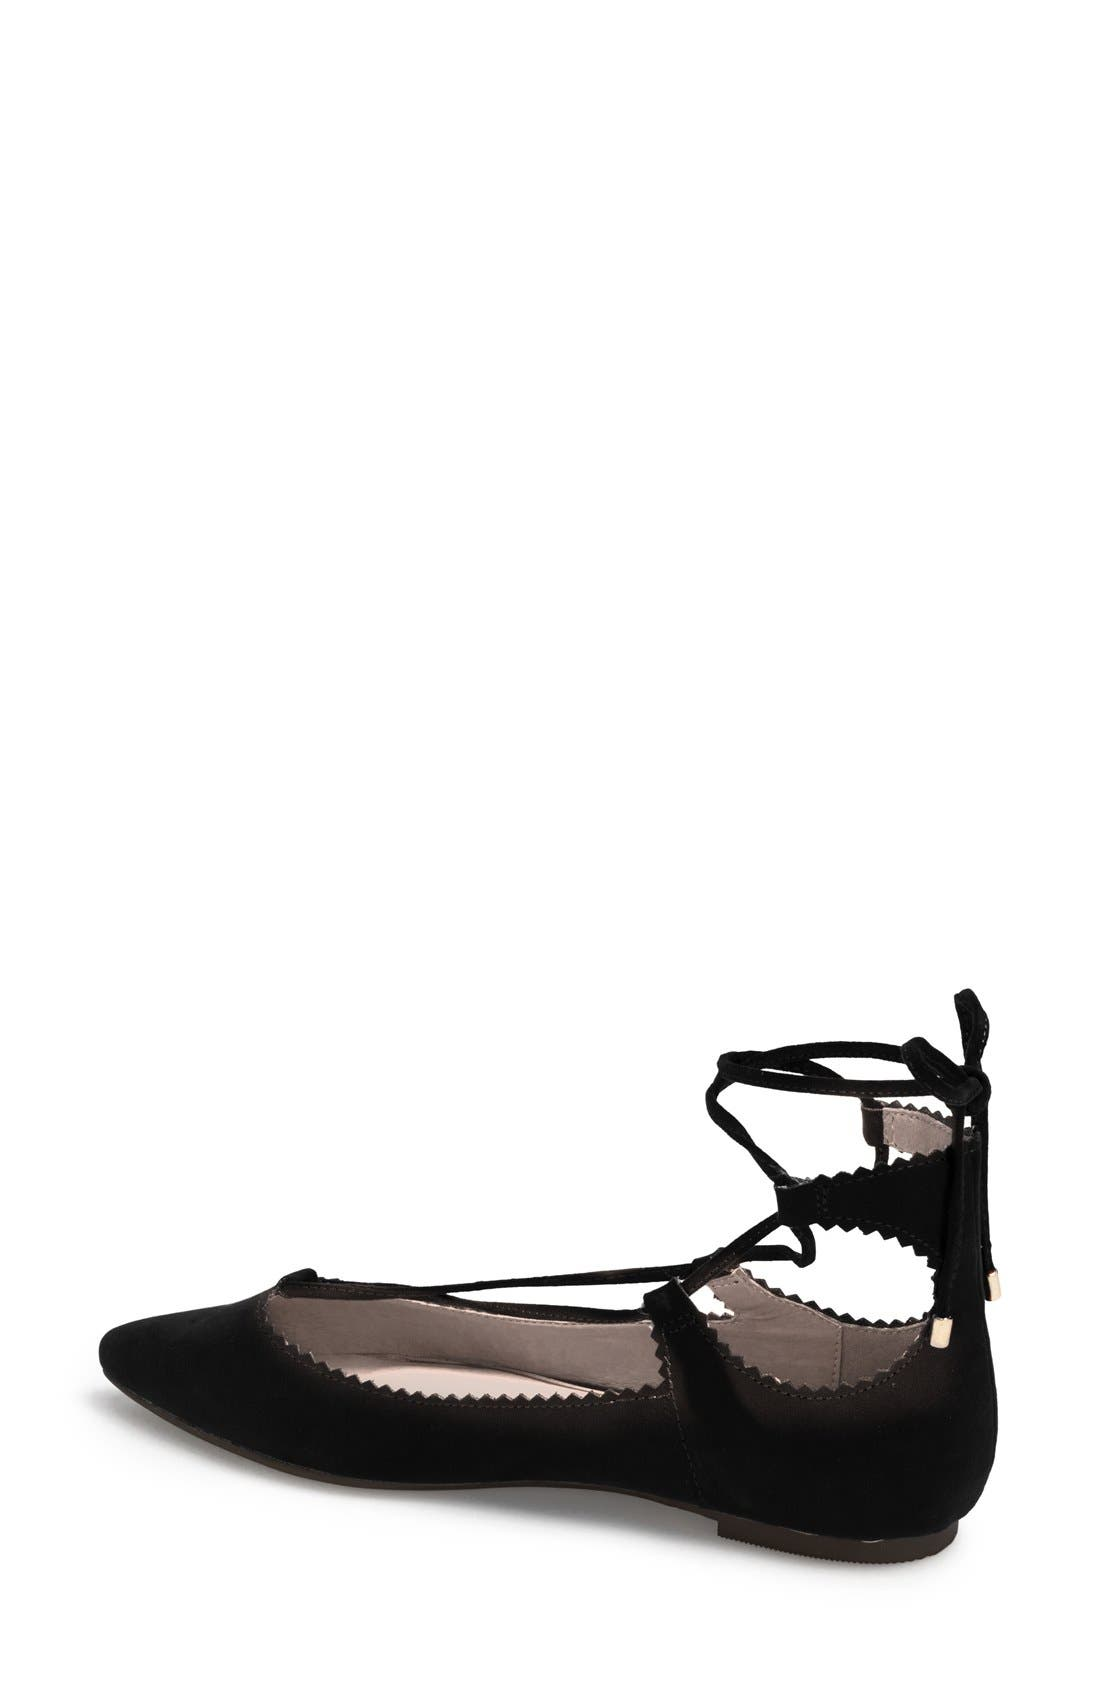 TOPSHOP, 'Finest Shillie' Lace-Up Pointy Toe Flat, Alternate thumbnail 4, color, 001